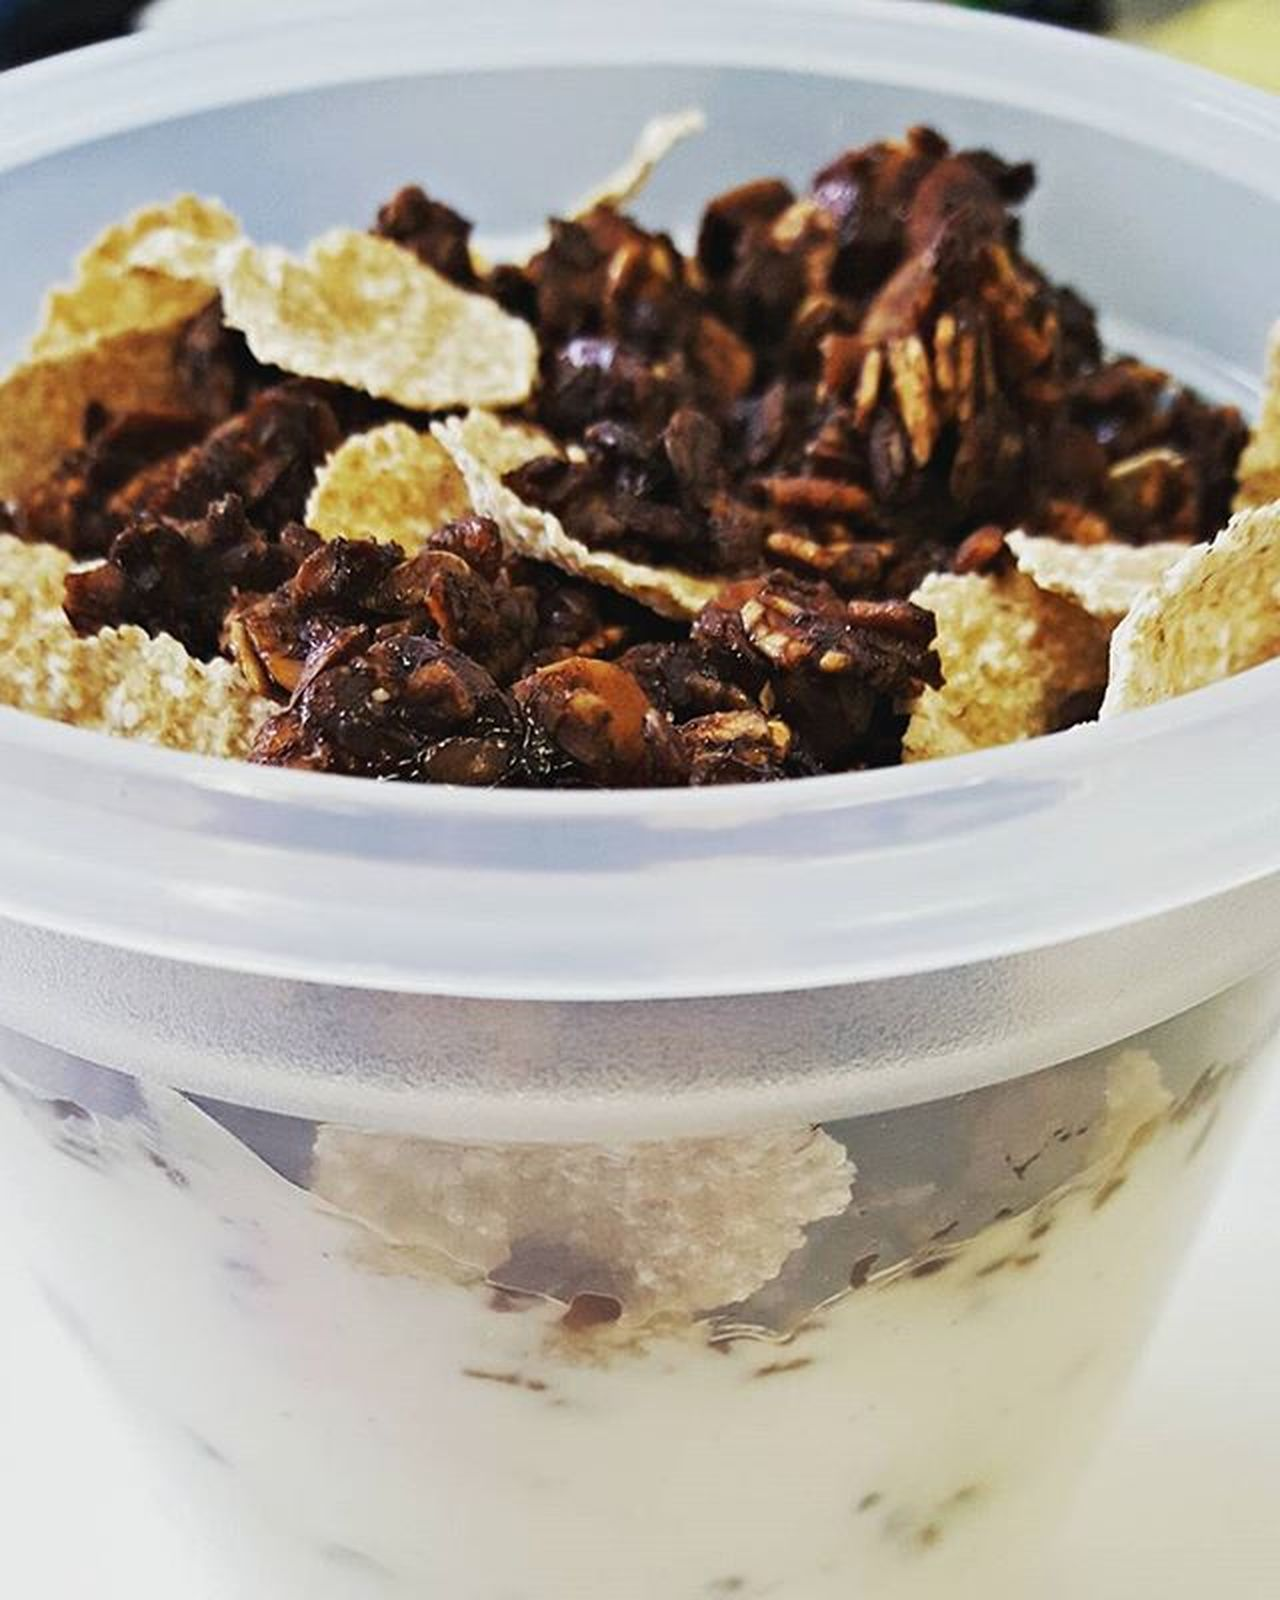 Here's my granola as an all day snack for work, packed with all the macros! 💪 Snack Granola Togo Homemade Coffee Chocolate Soy Blogger_LU Delicious Food Foodporn Munchdown Fyet Munchies Fat Chefsofinstagram Yumm Carbs Oats Nuts Protein Macros Lifestyle Lifestyleblogger Love favorite healthylife healthyfood healthychoices